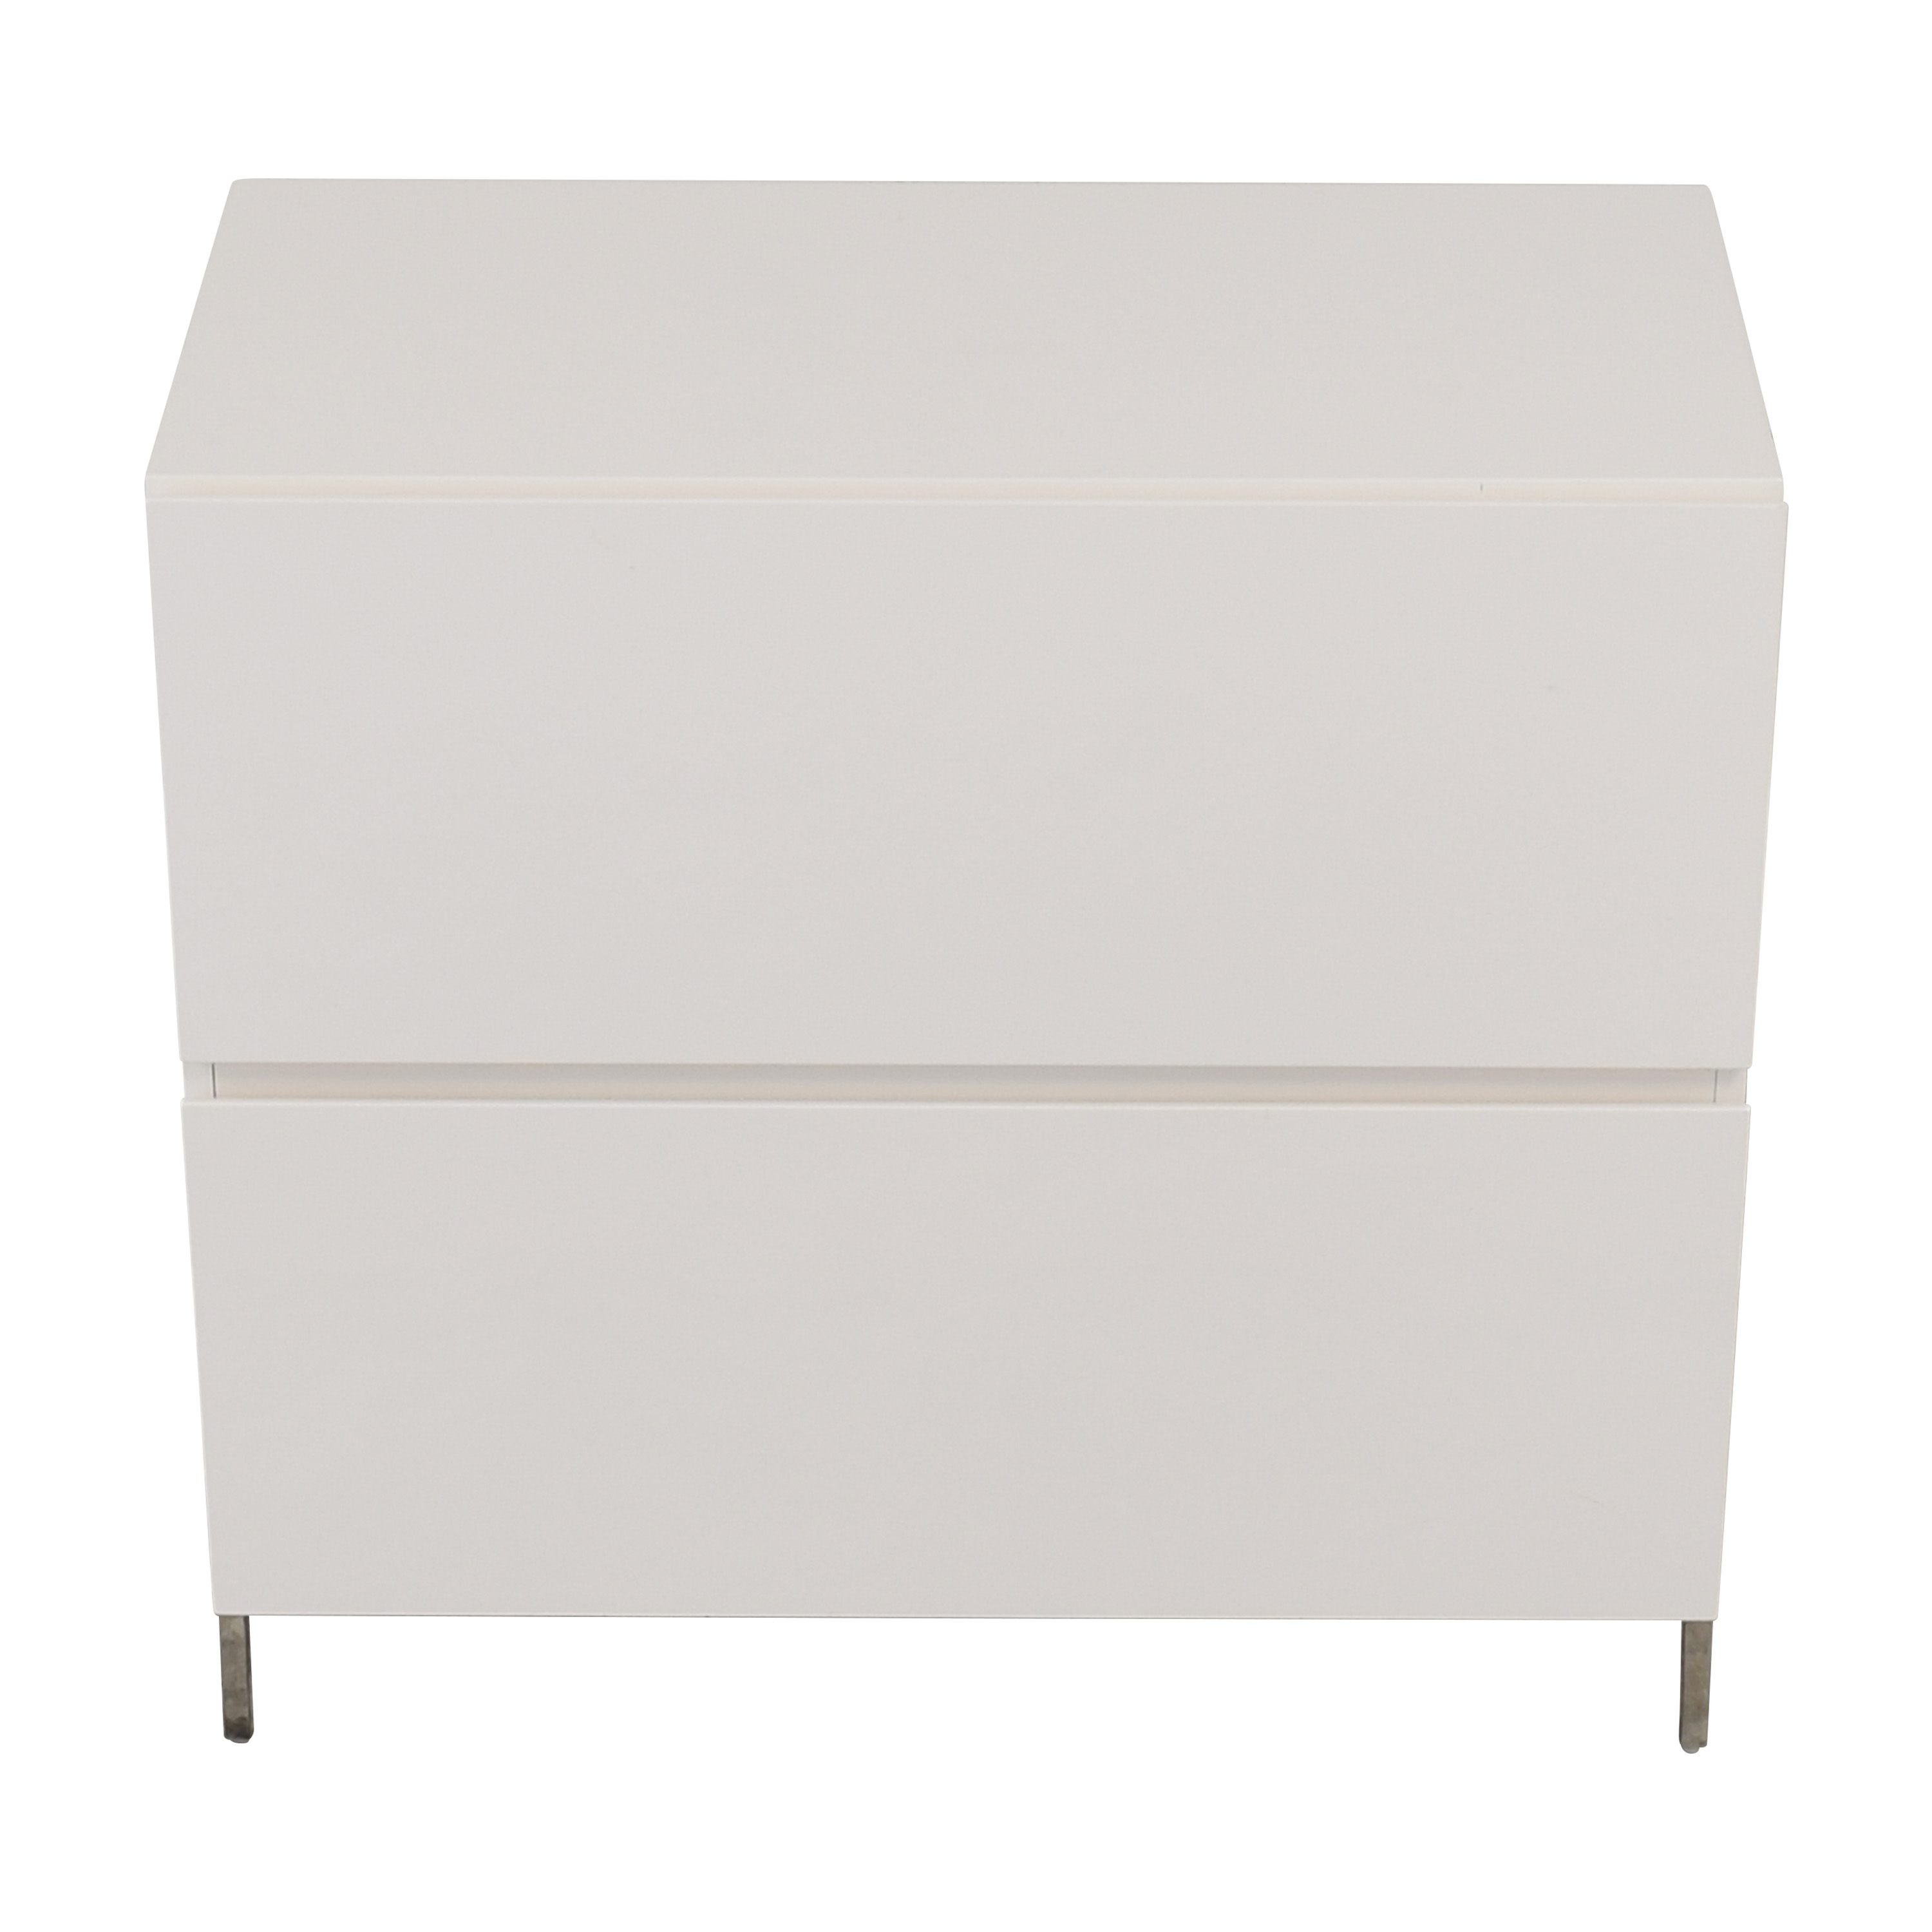 West Elm West Elm Lacquer Storage Modular Lateral File Cabinet ma